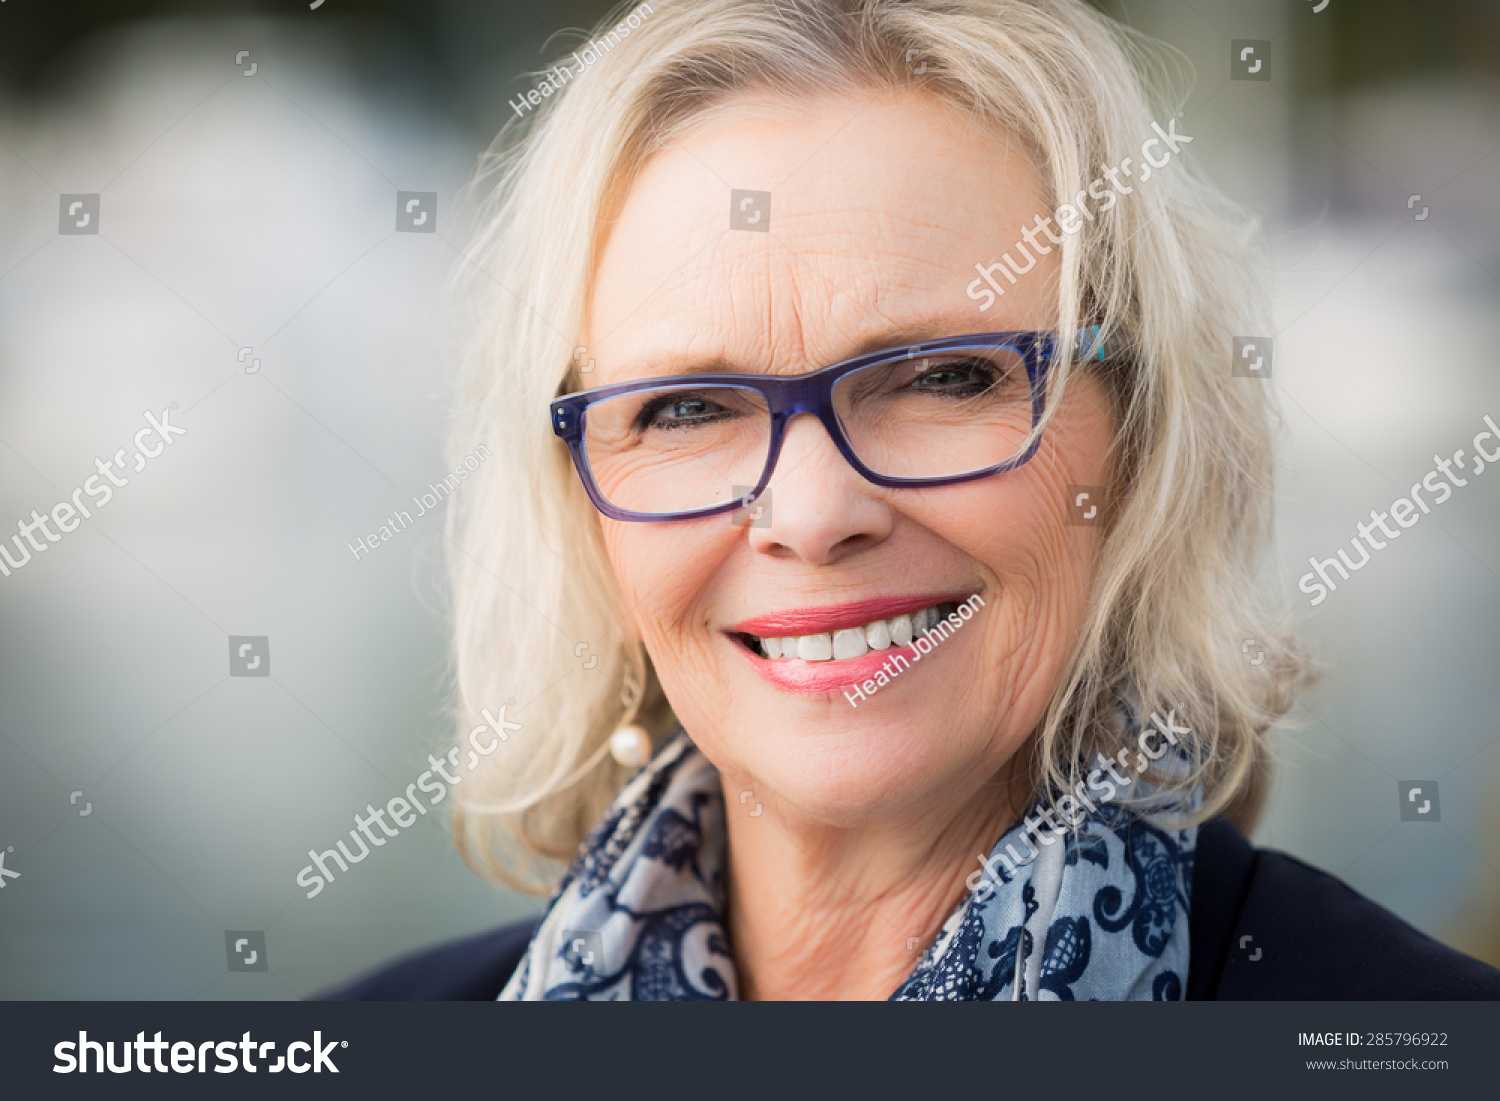 60 years old blonde woman stock photo (royalty free) 285796922